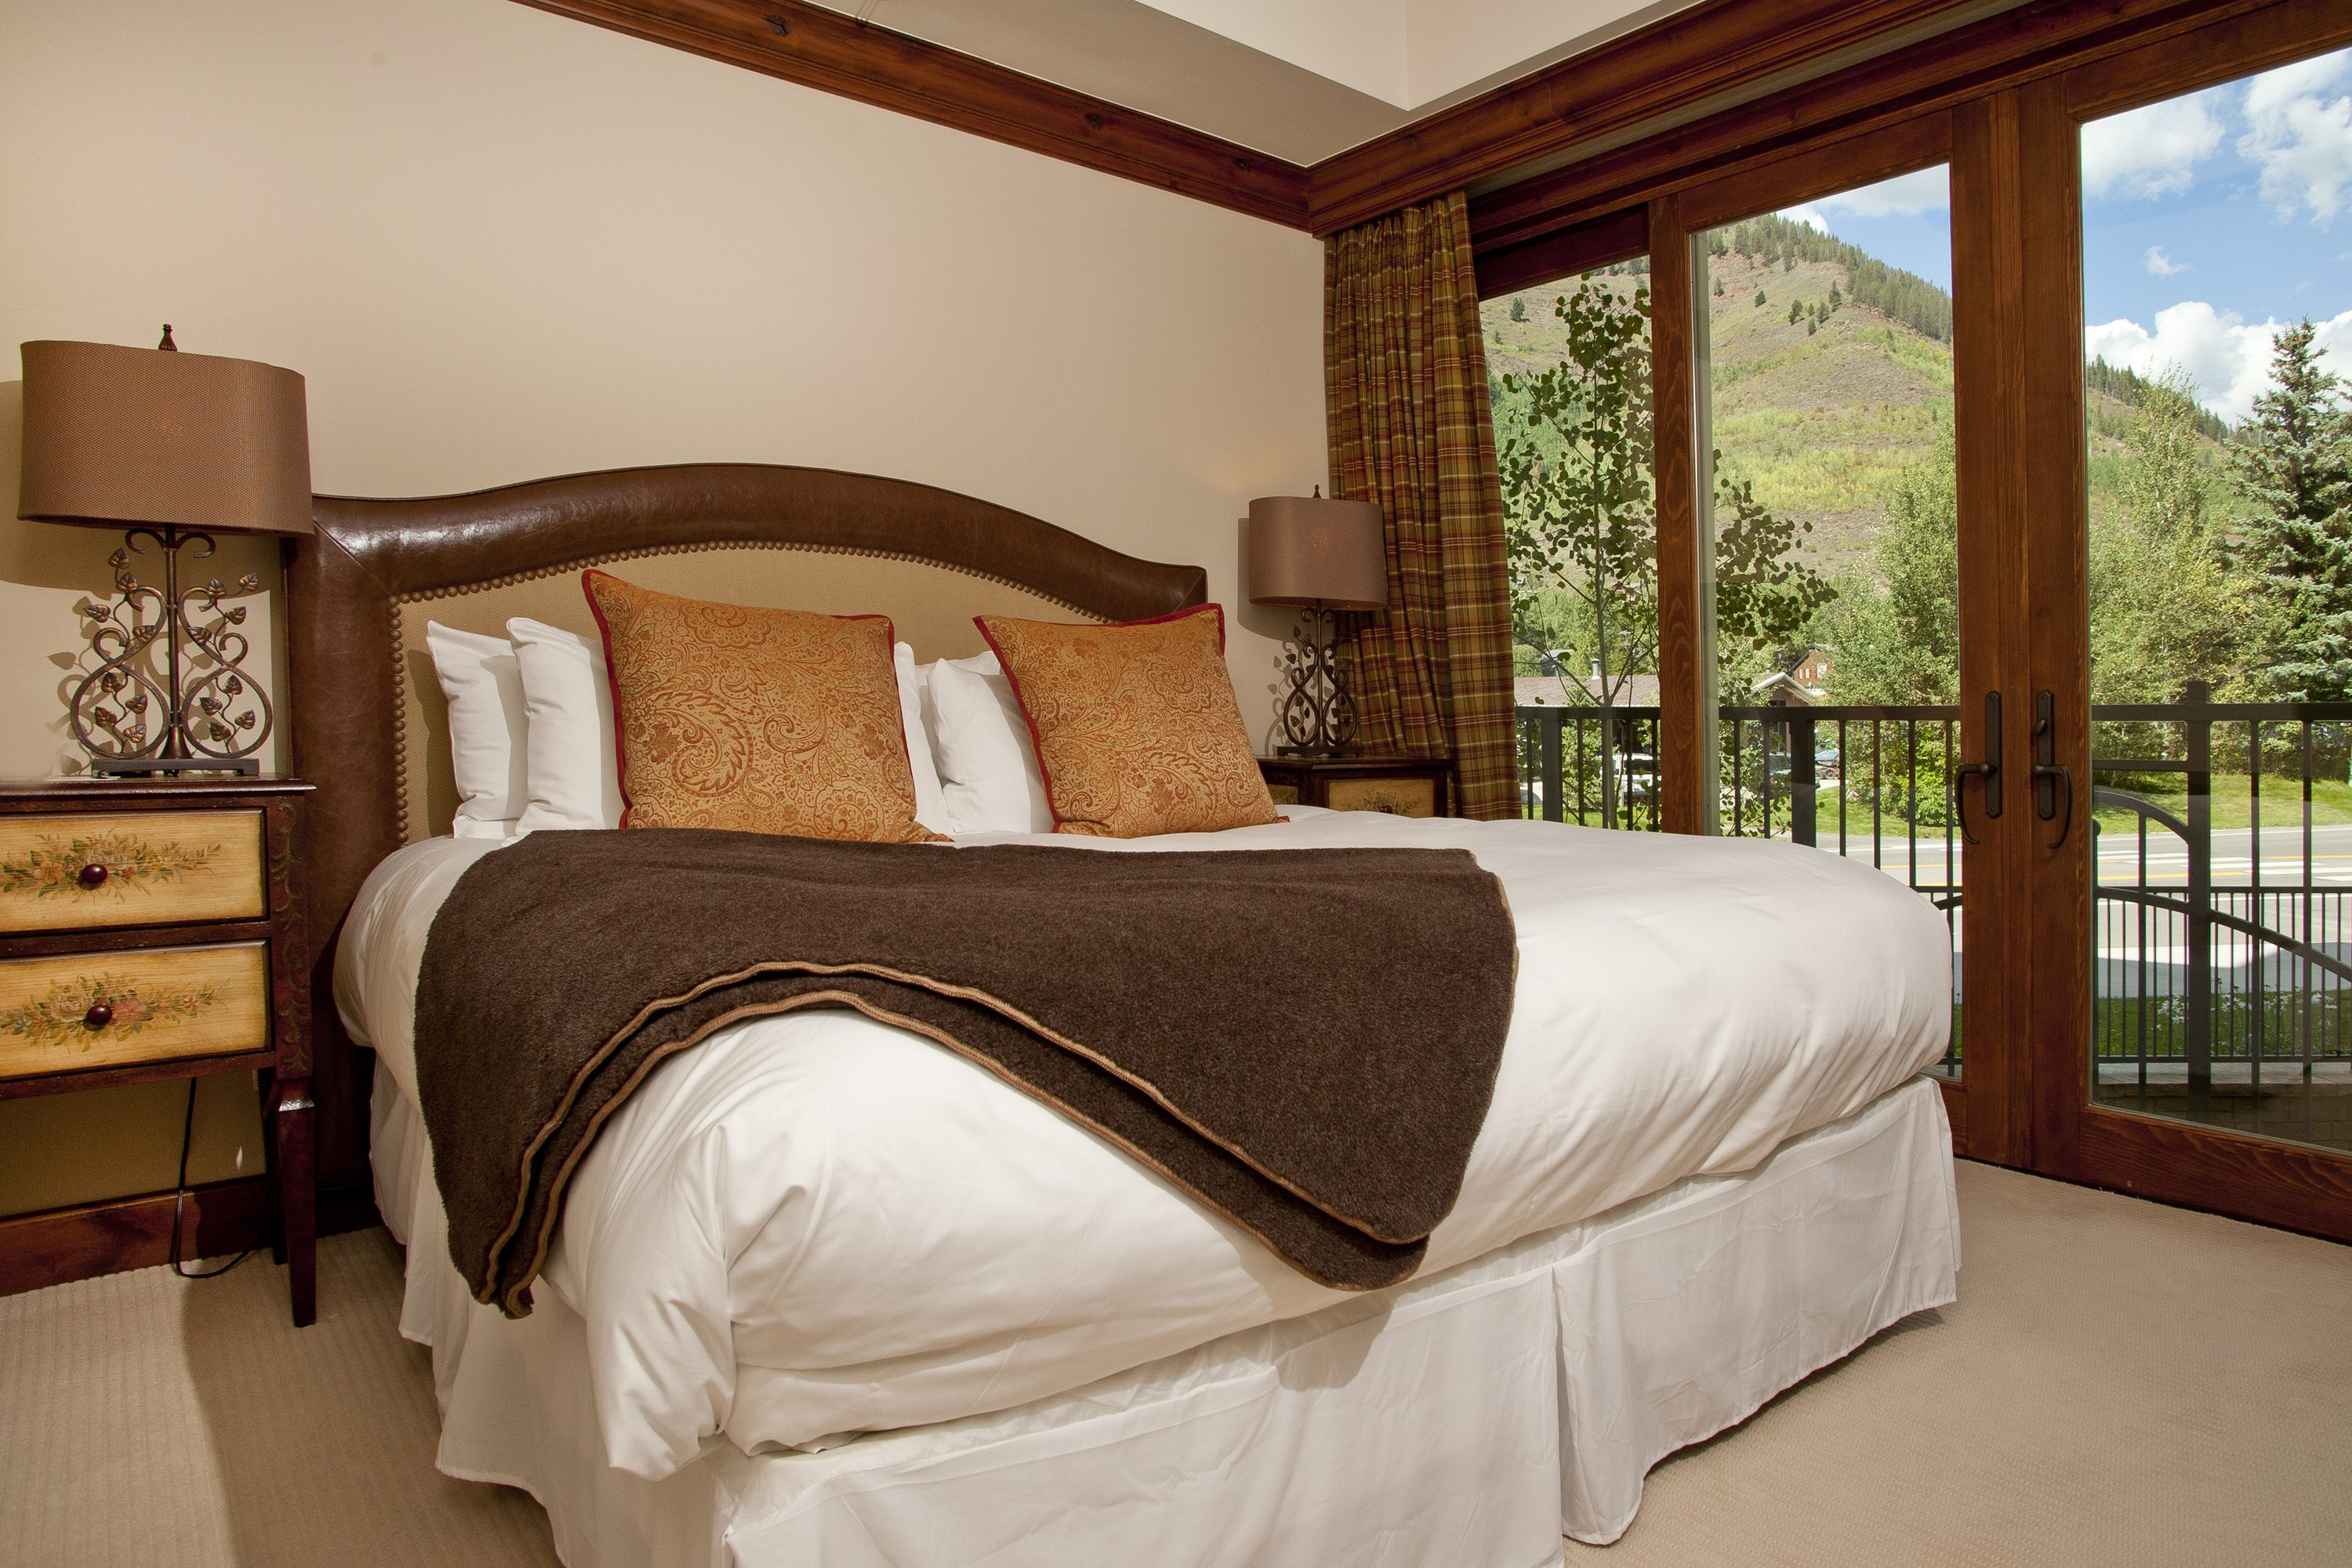 King bedroom with air conditioning and state of the art soundproof windows